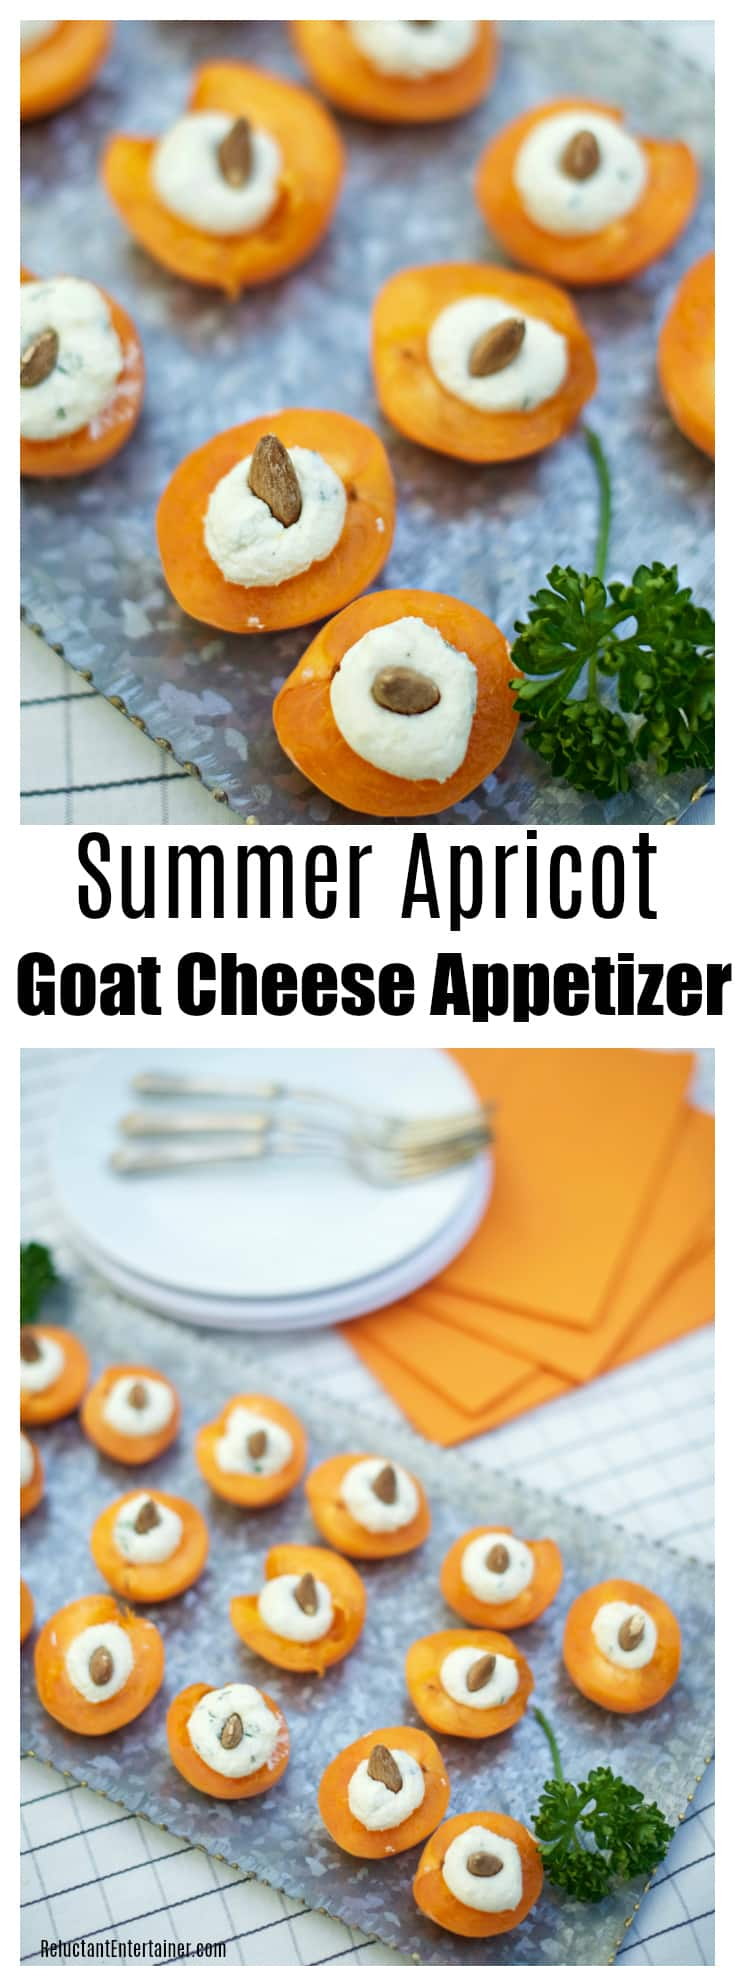 Summer Apricot Goat Cheese Appetizer